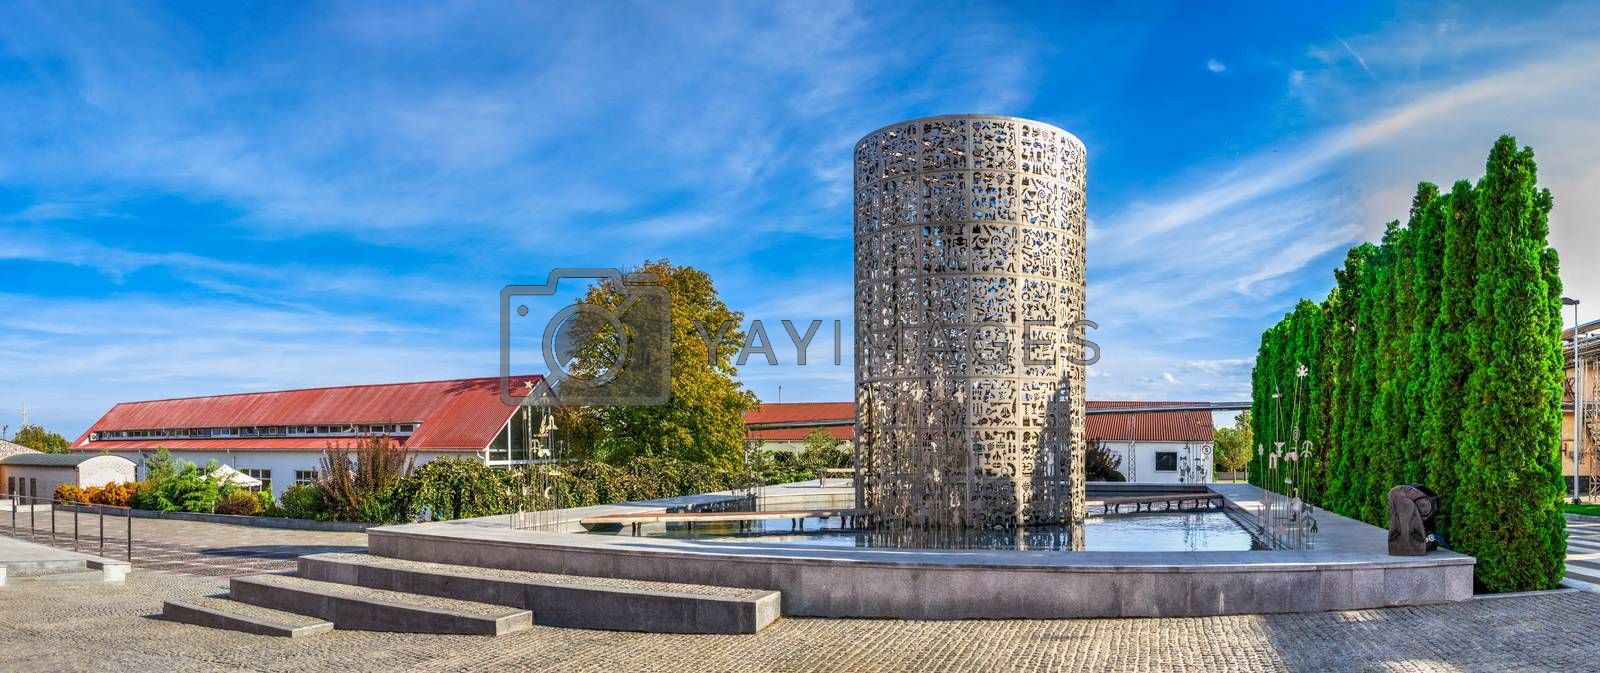 Shabo, Ukraine 09.29.2019. Light and music fountain with wine icon symbols in the Shabo winery, Odessa region, Ukraine